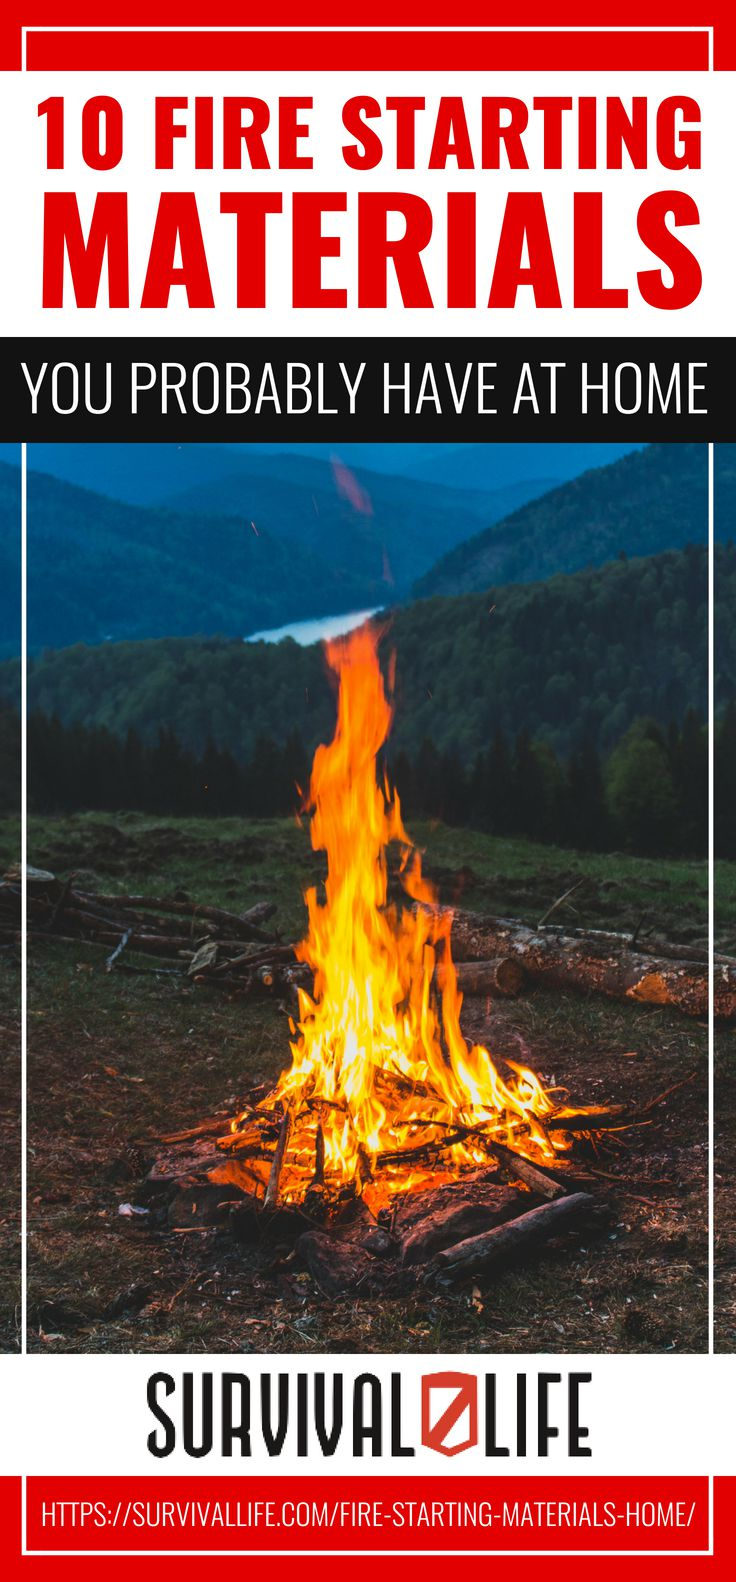 Fire Starting Materials You Probably Have At Home | https://survivallife.com/fire-starting-materials-home/